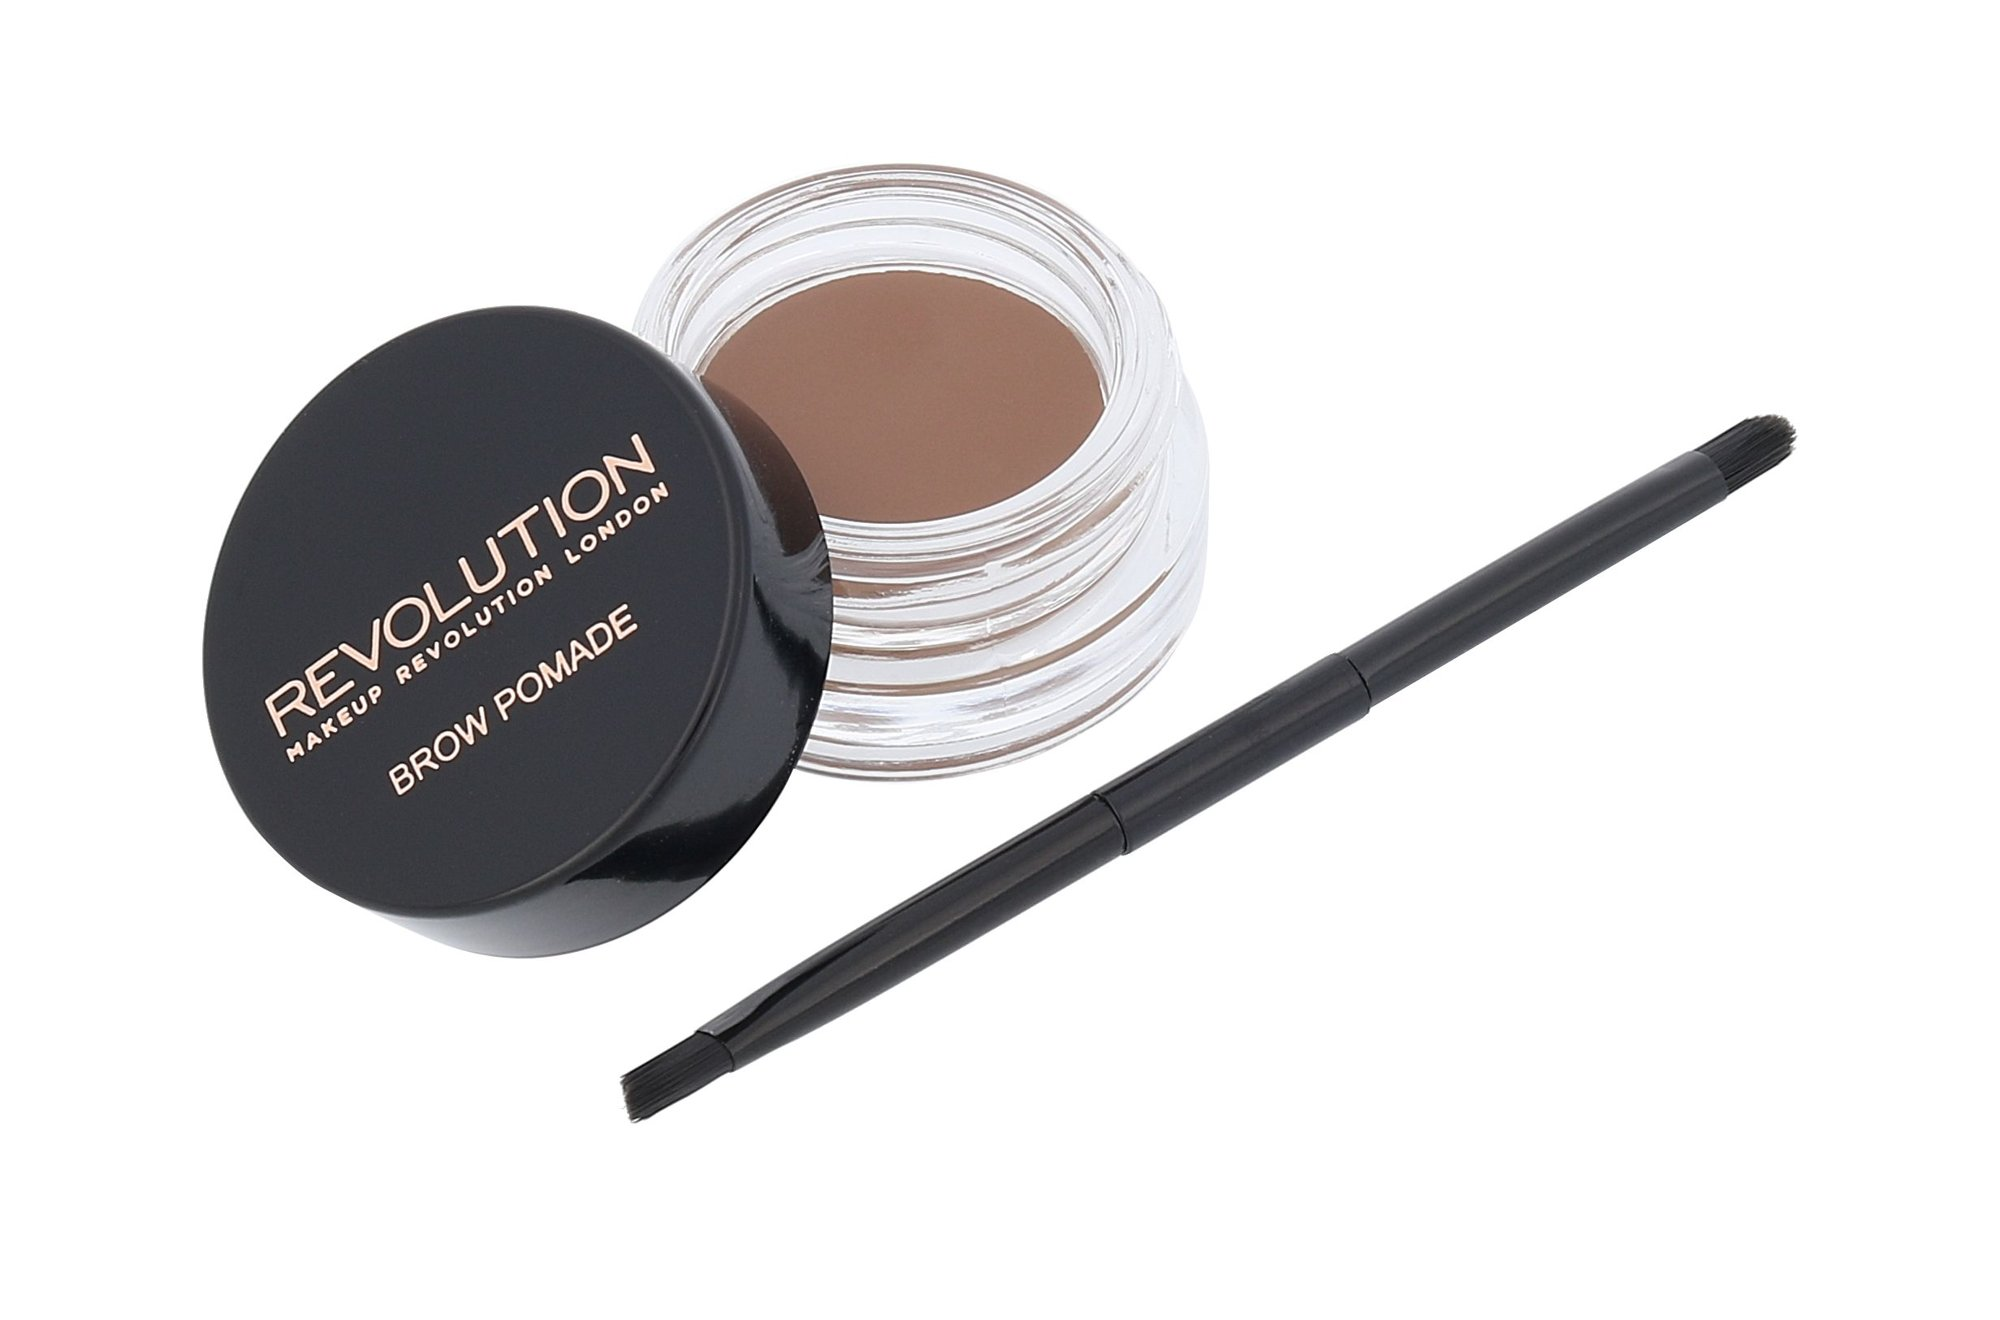 Makeup Revolution London Brow Pomade With Double Ended Brush Cosmetic 2,5g Soft Brown